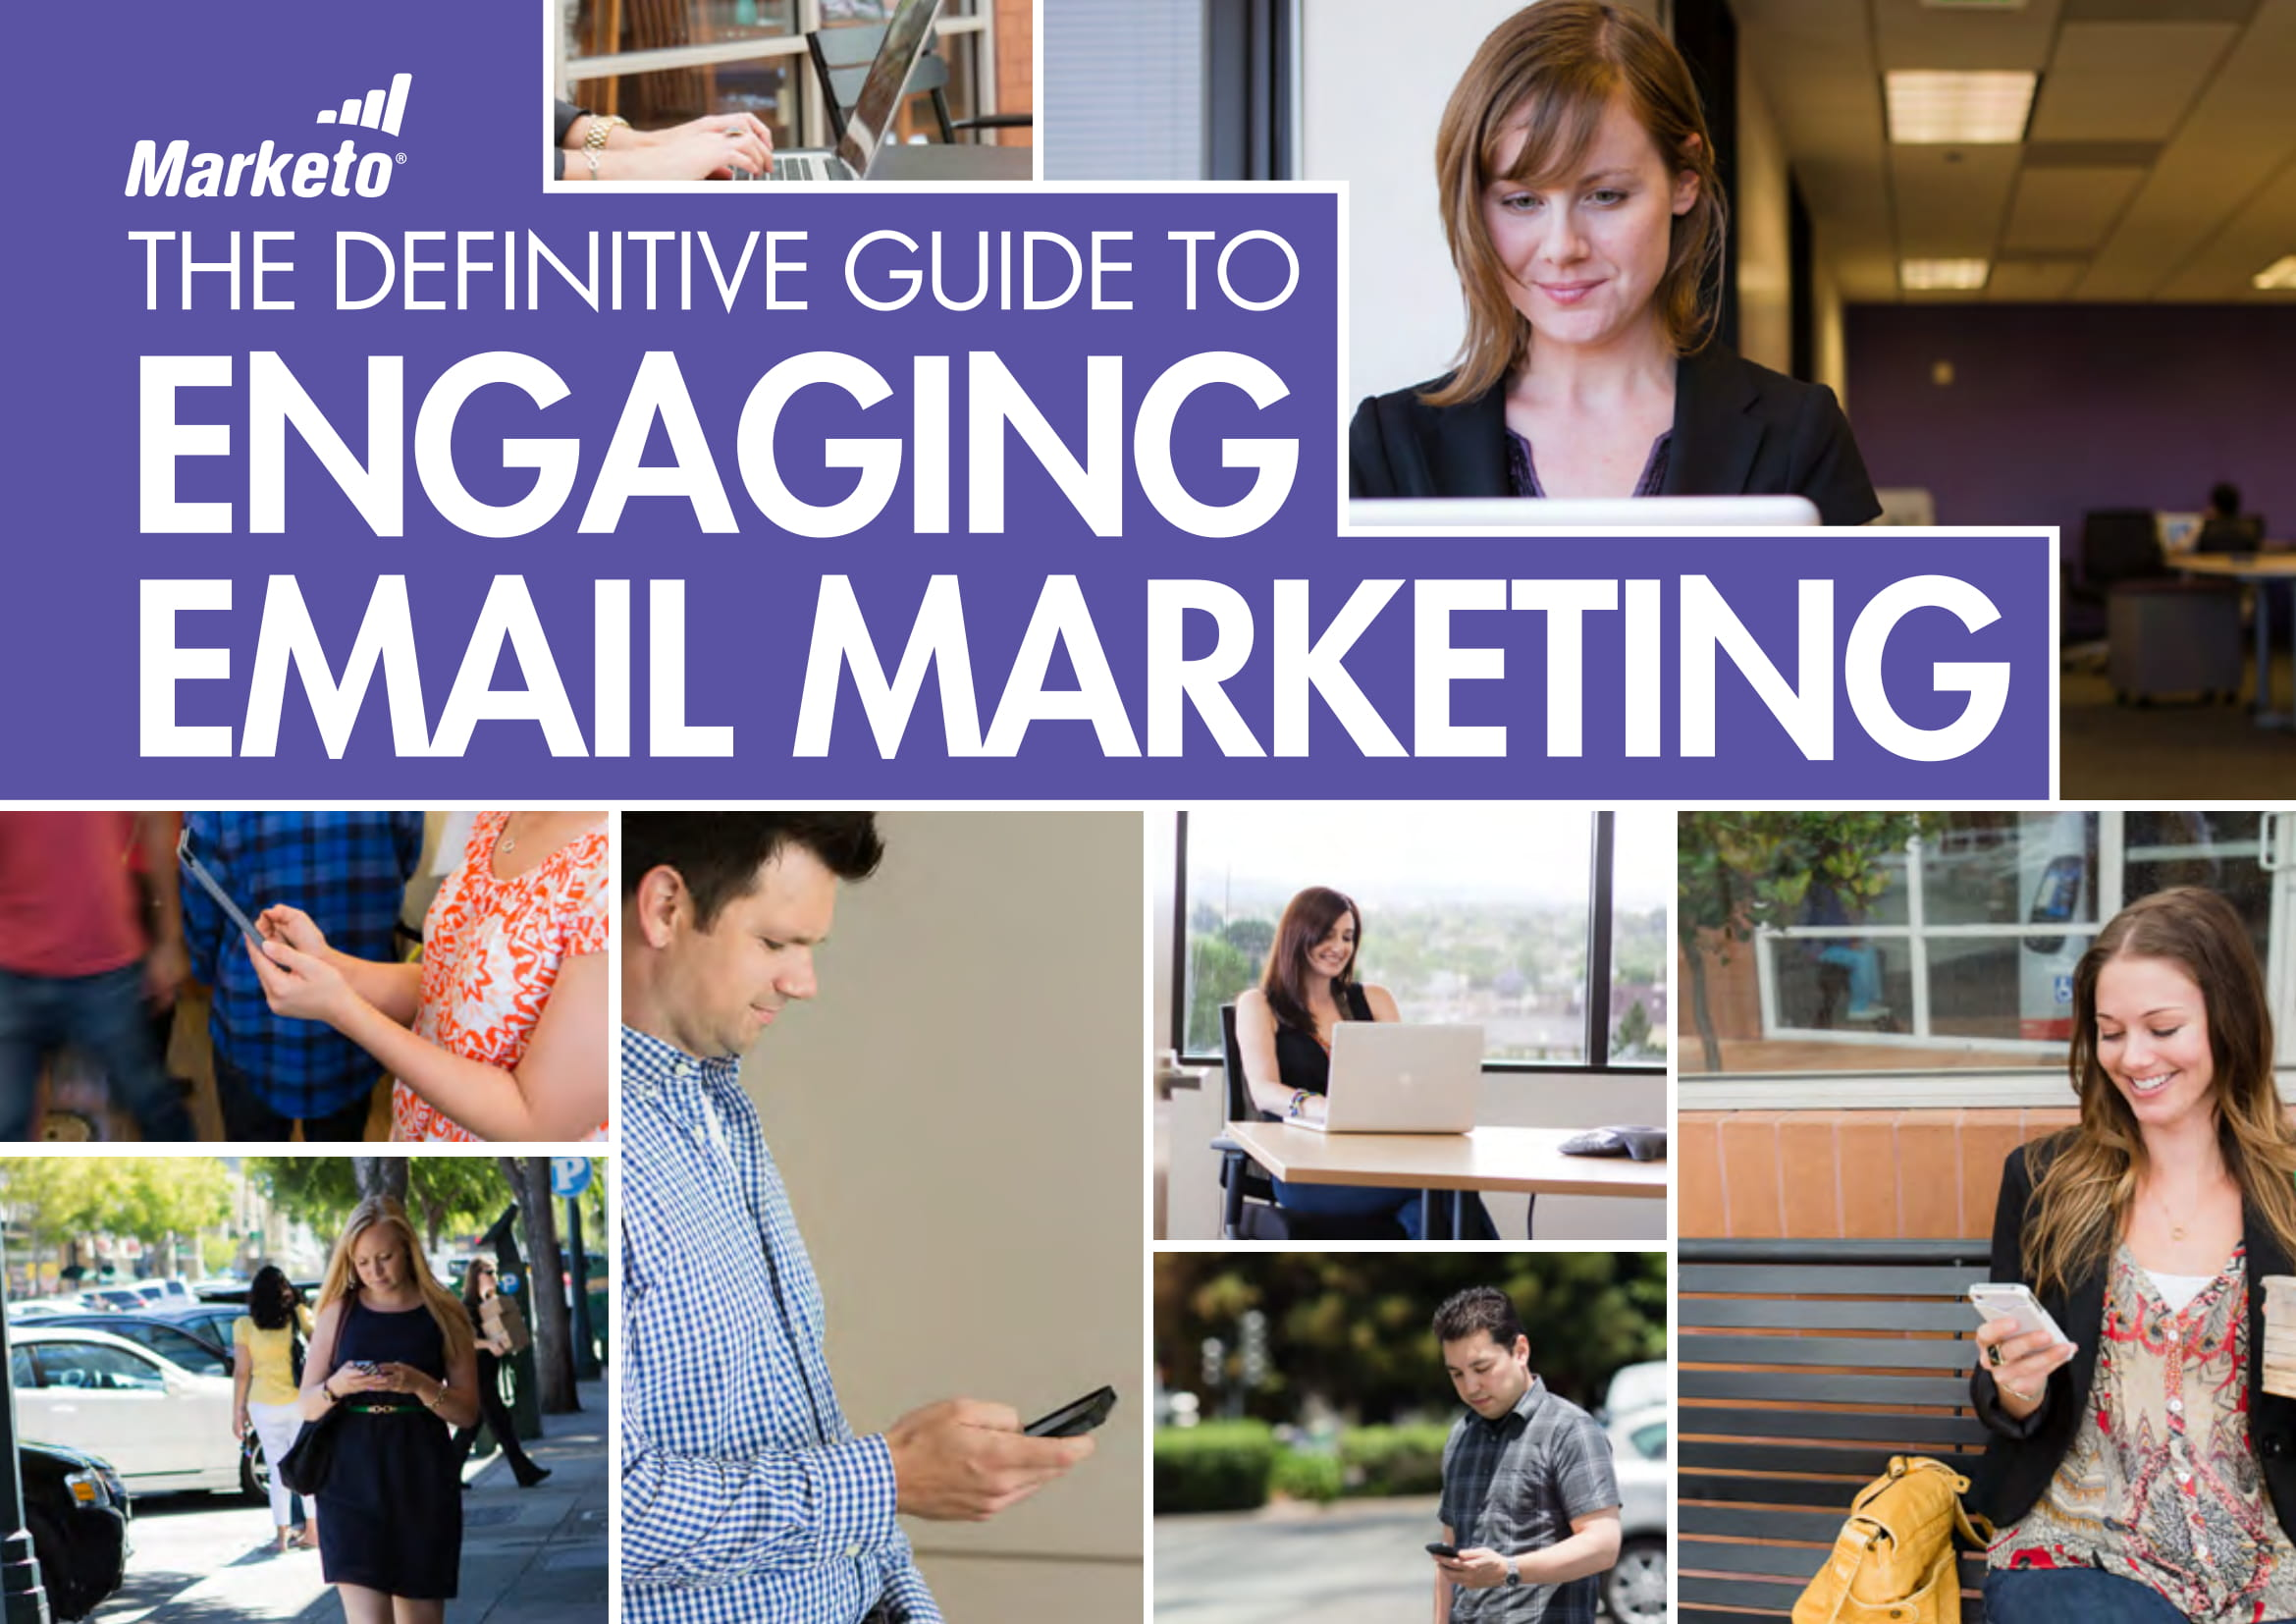 engaging email marketing guide and plan example 001